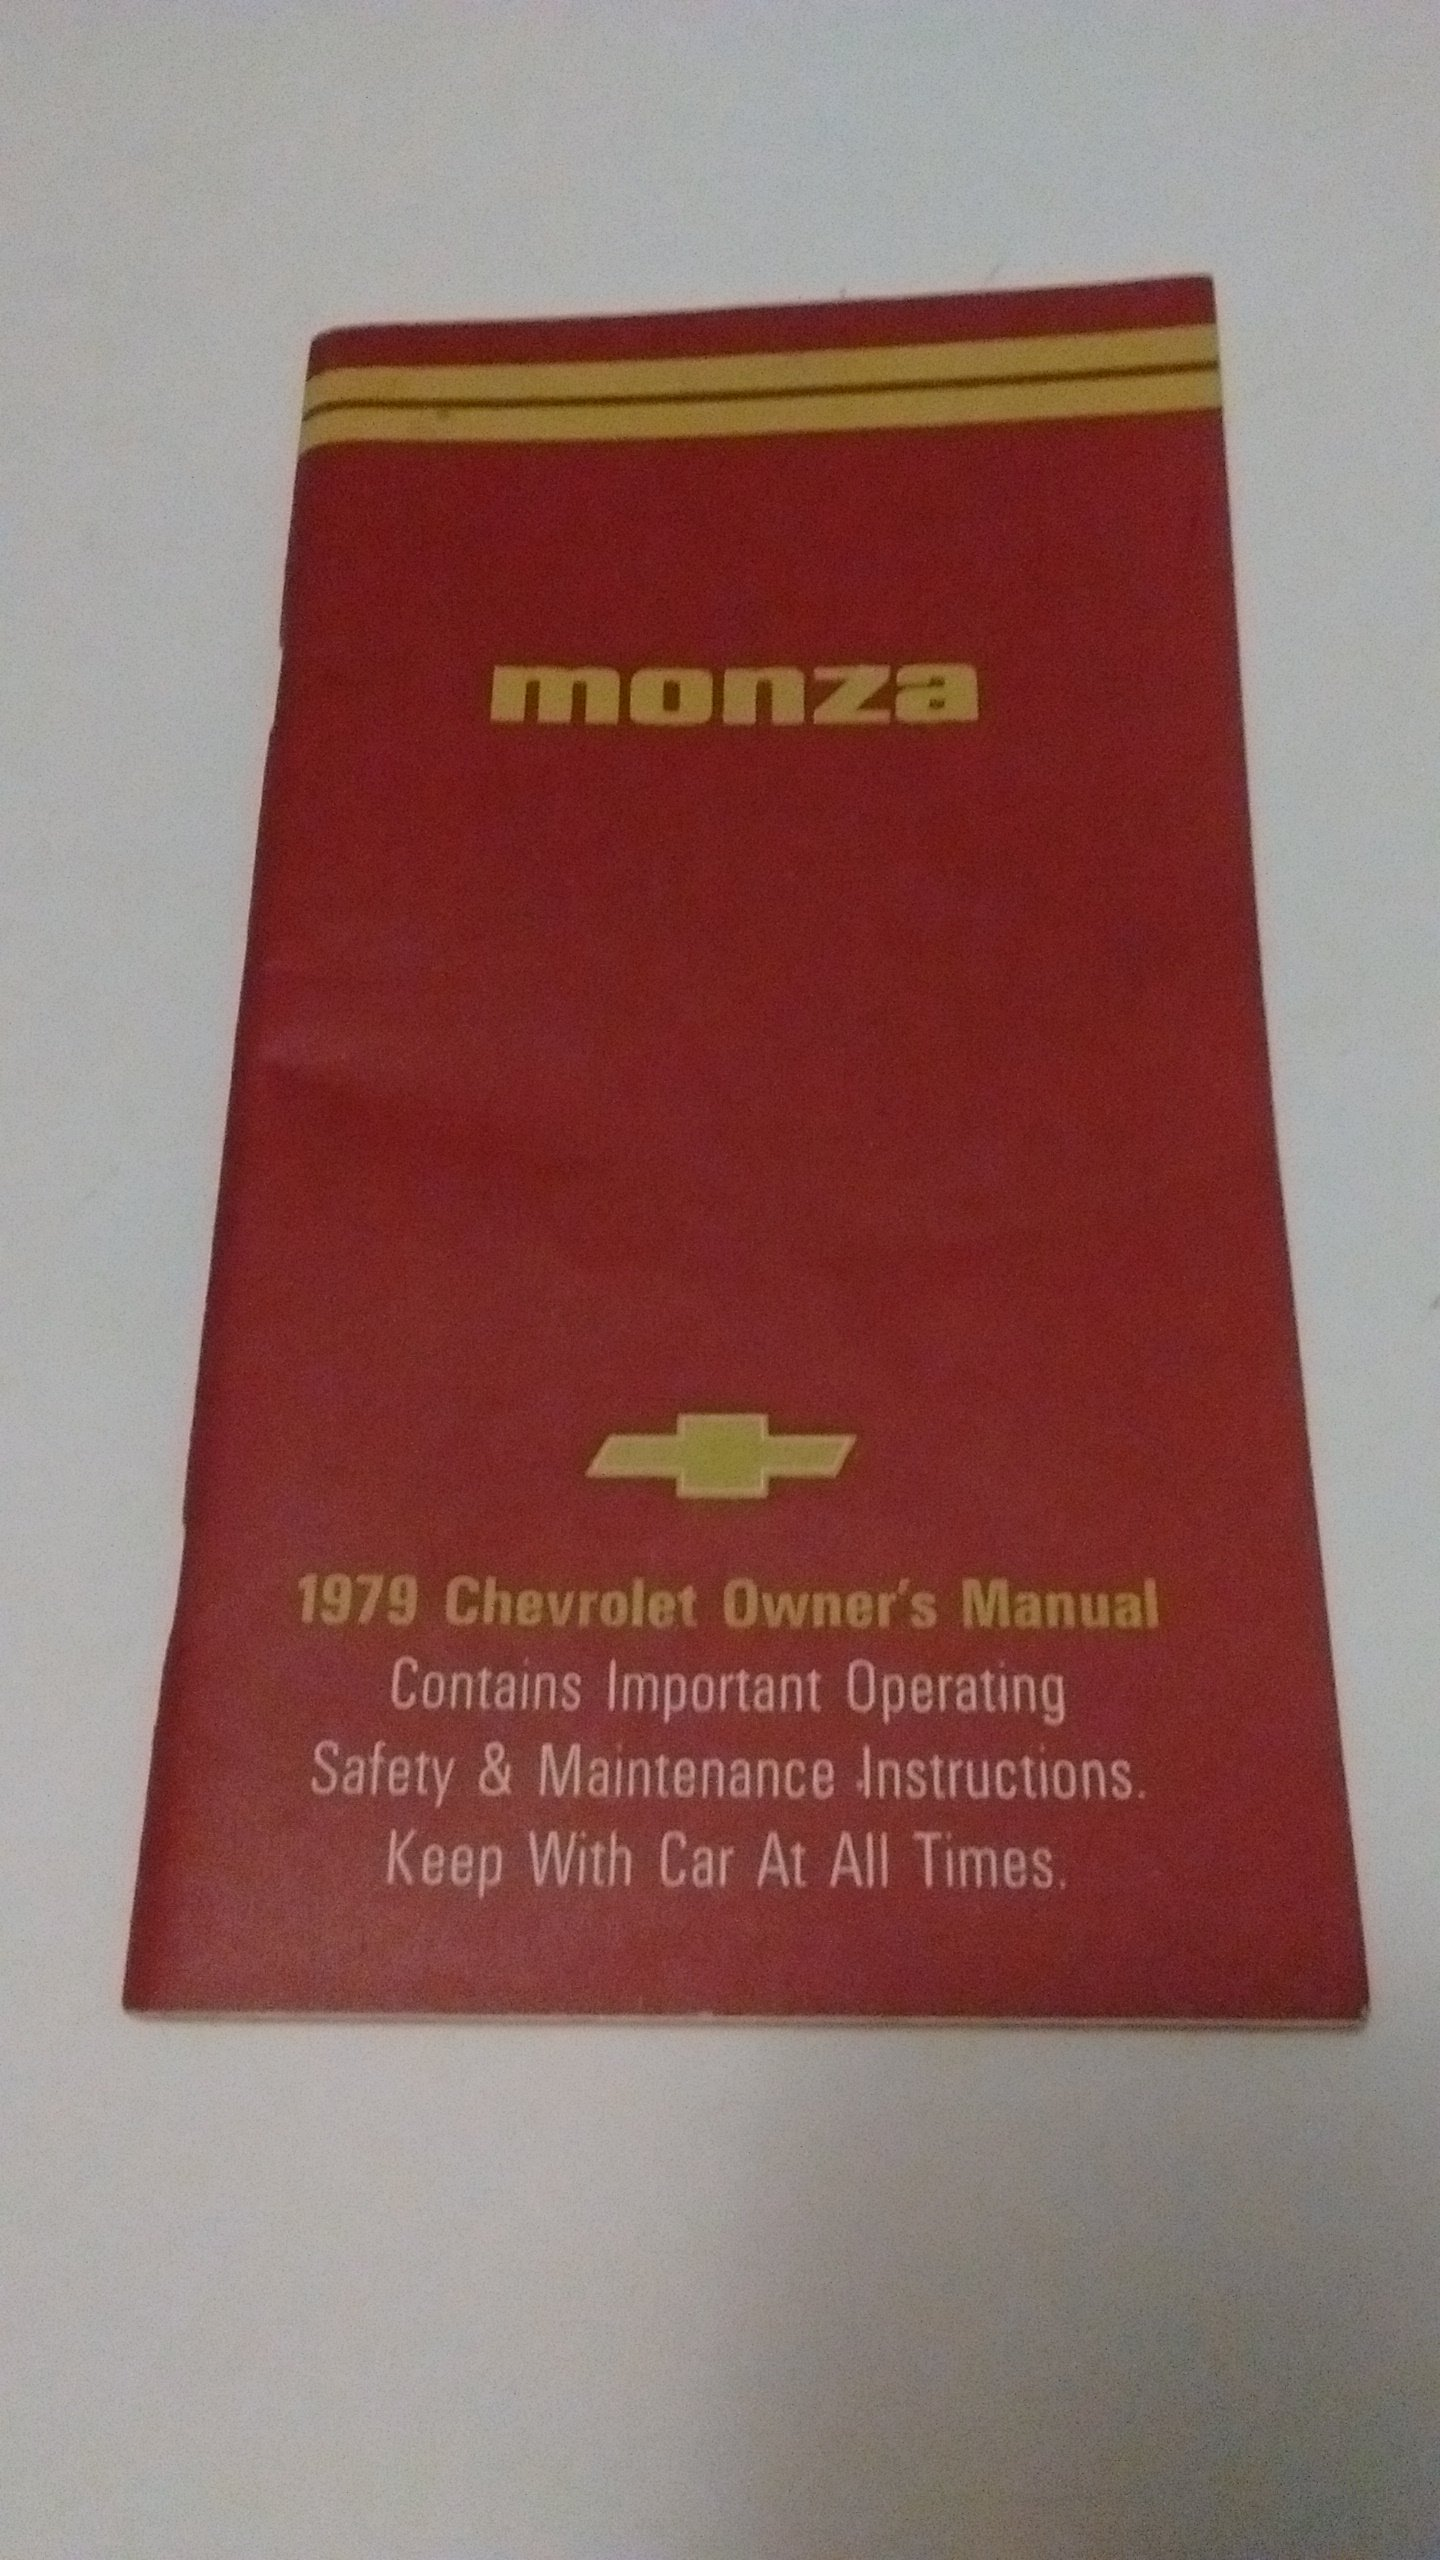 1979 CHEVROLET MONZA OWNERS MANUAL: CHEVY: 0744309742581: Amazon.com: Books